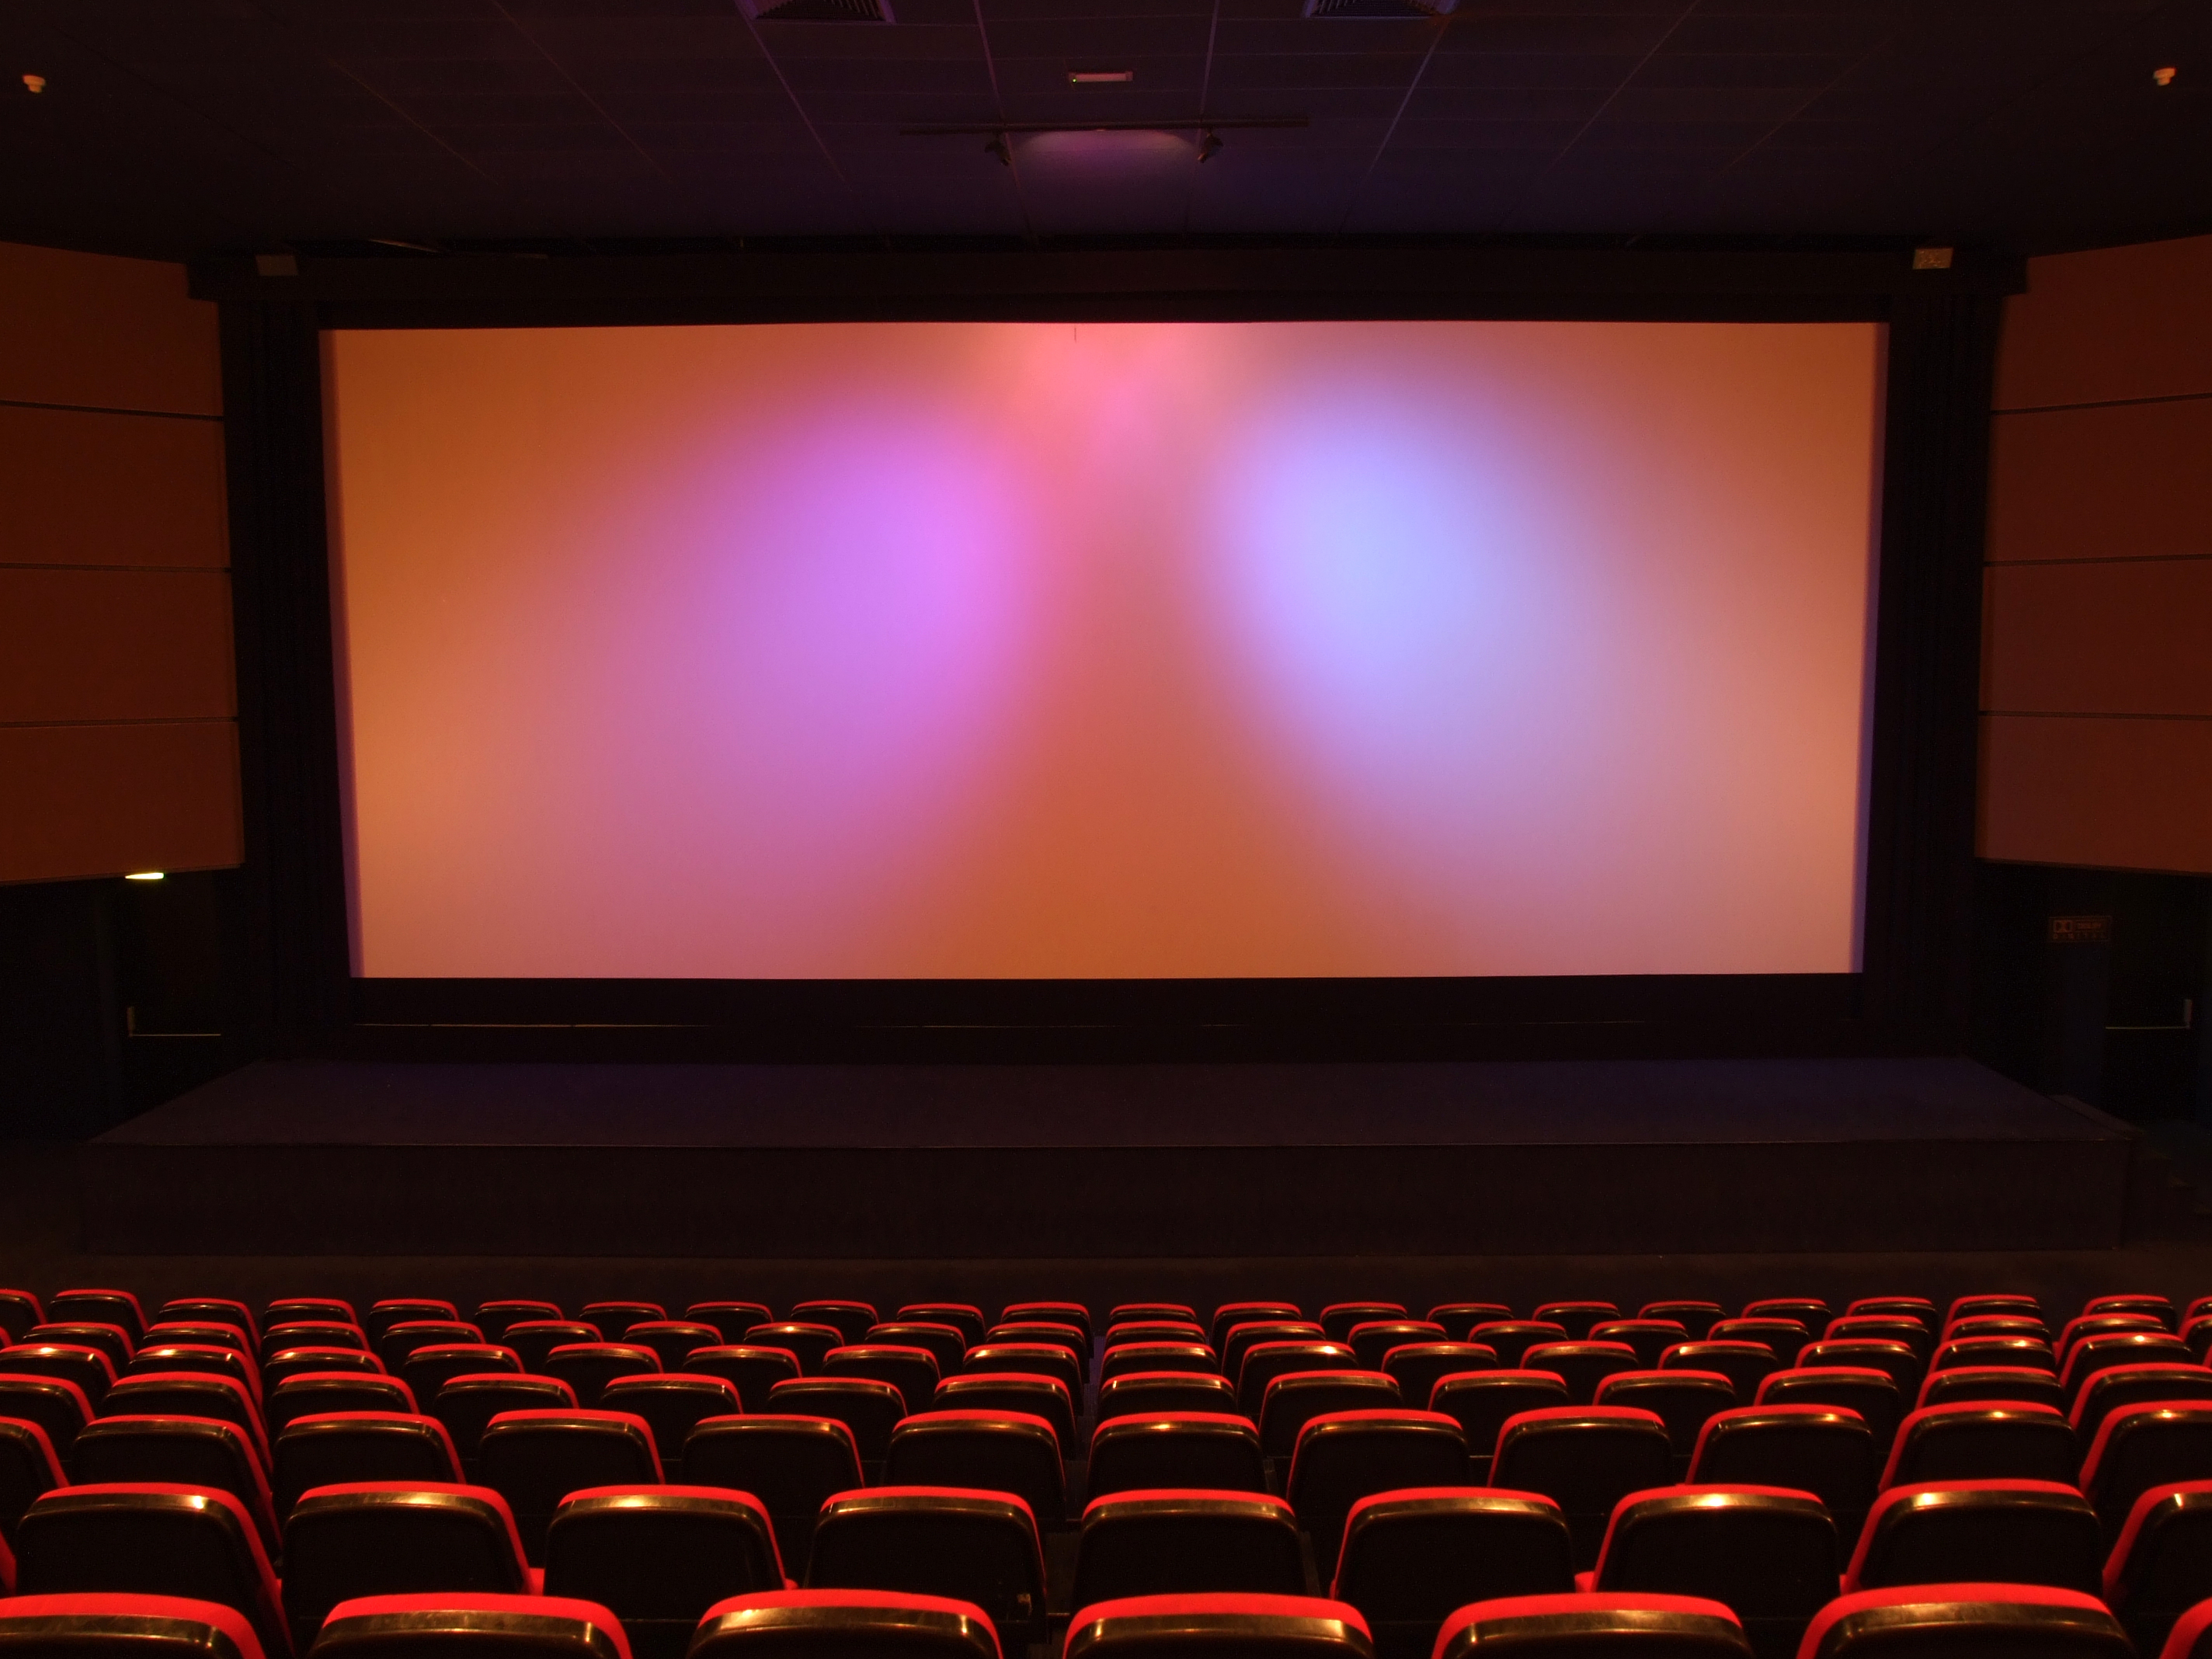 Image of an empty movie theater